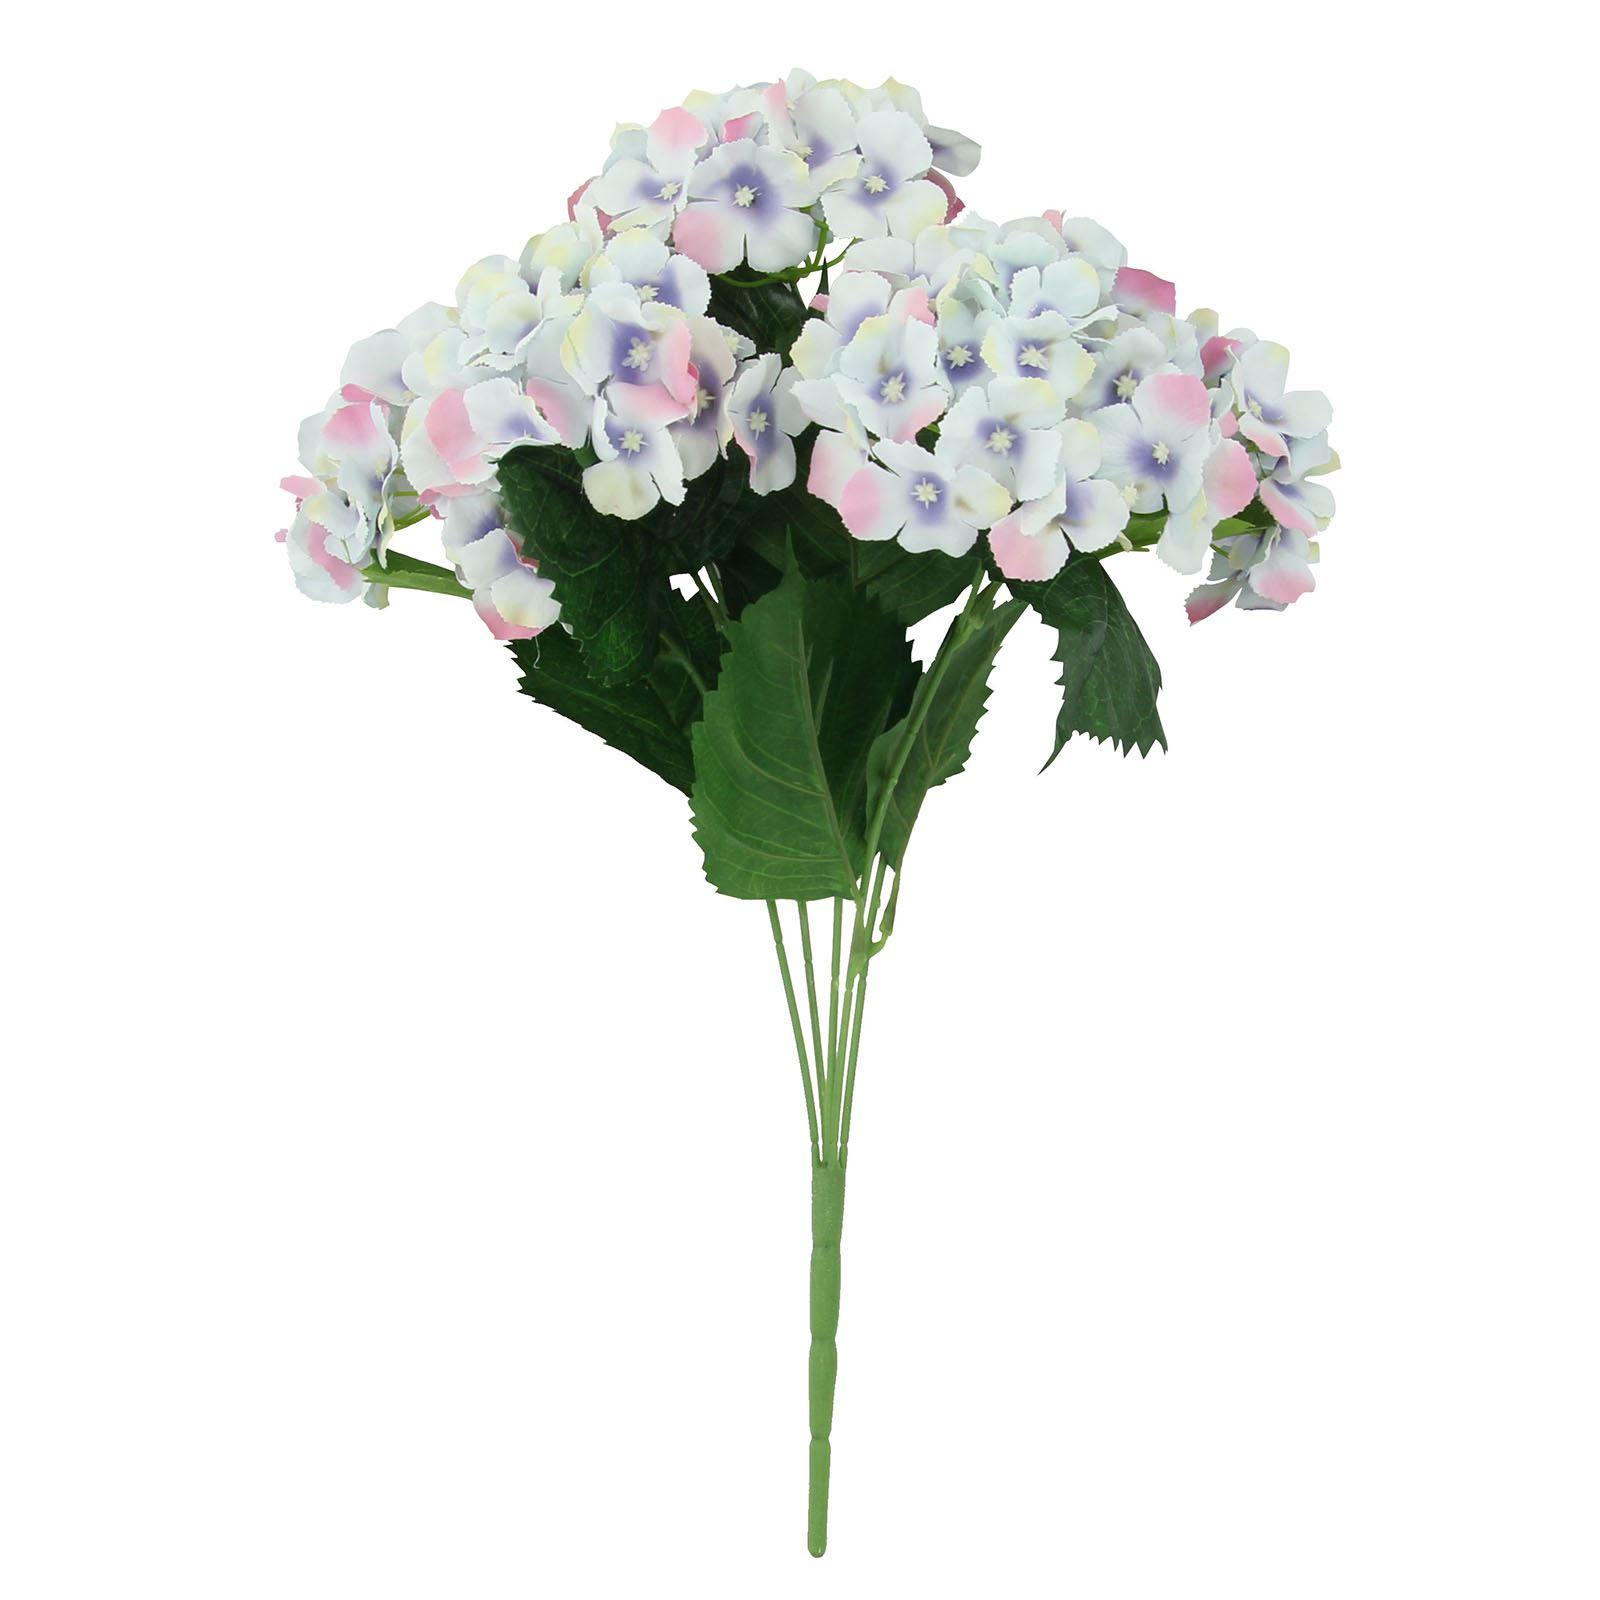 Large Hydrangea Blossom Bouquet Artificial Silk Wedding Fake Flowers